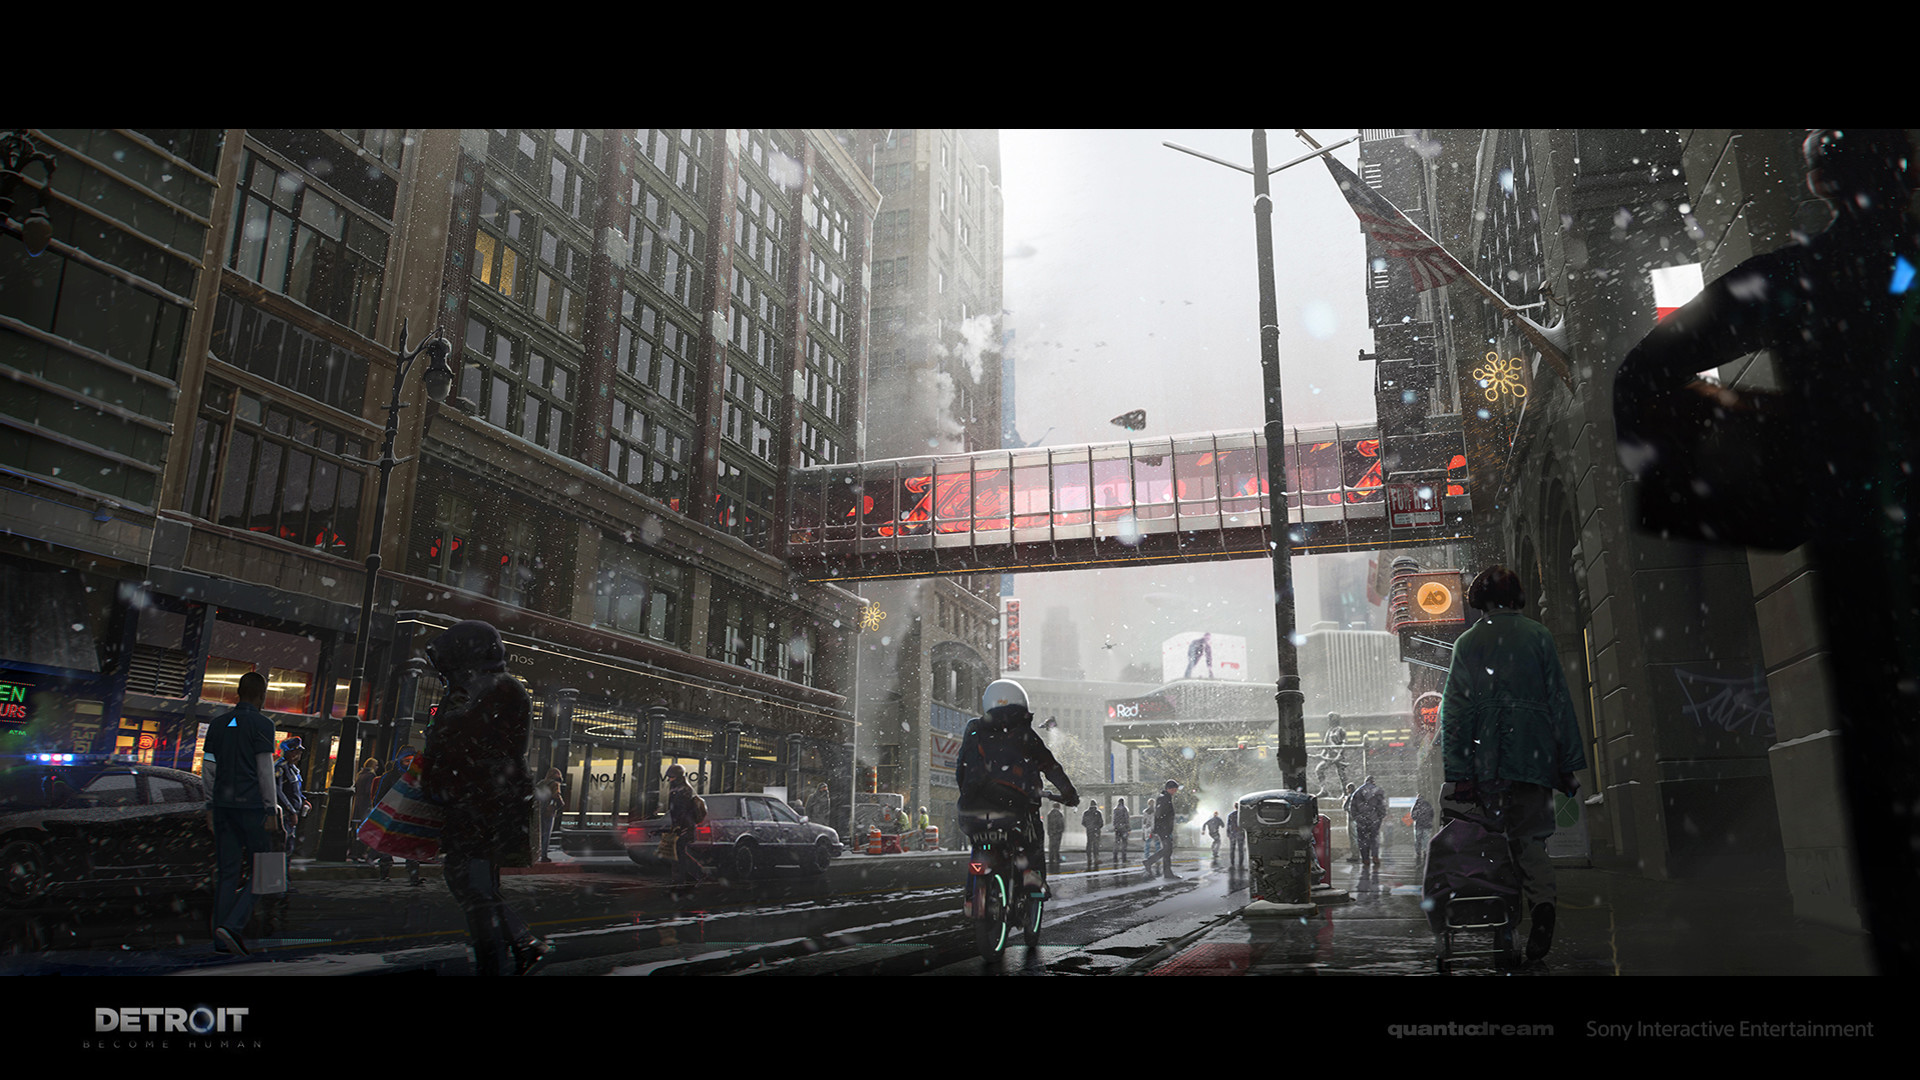 General 1920x1080 Antoine Boutin Detroit become human concept art video game art street bicycle Detroit: Become Human video games Quantic Dream Detroit snow